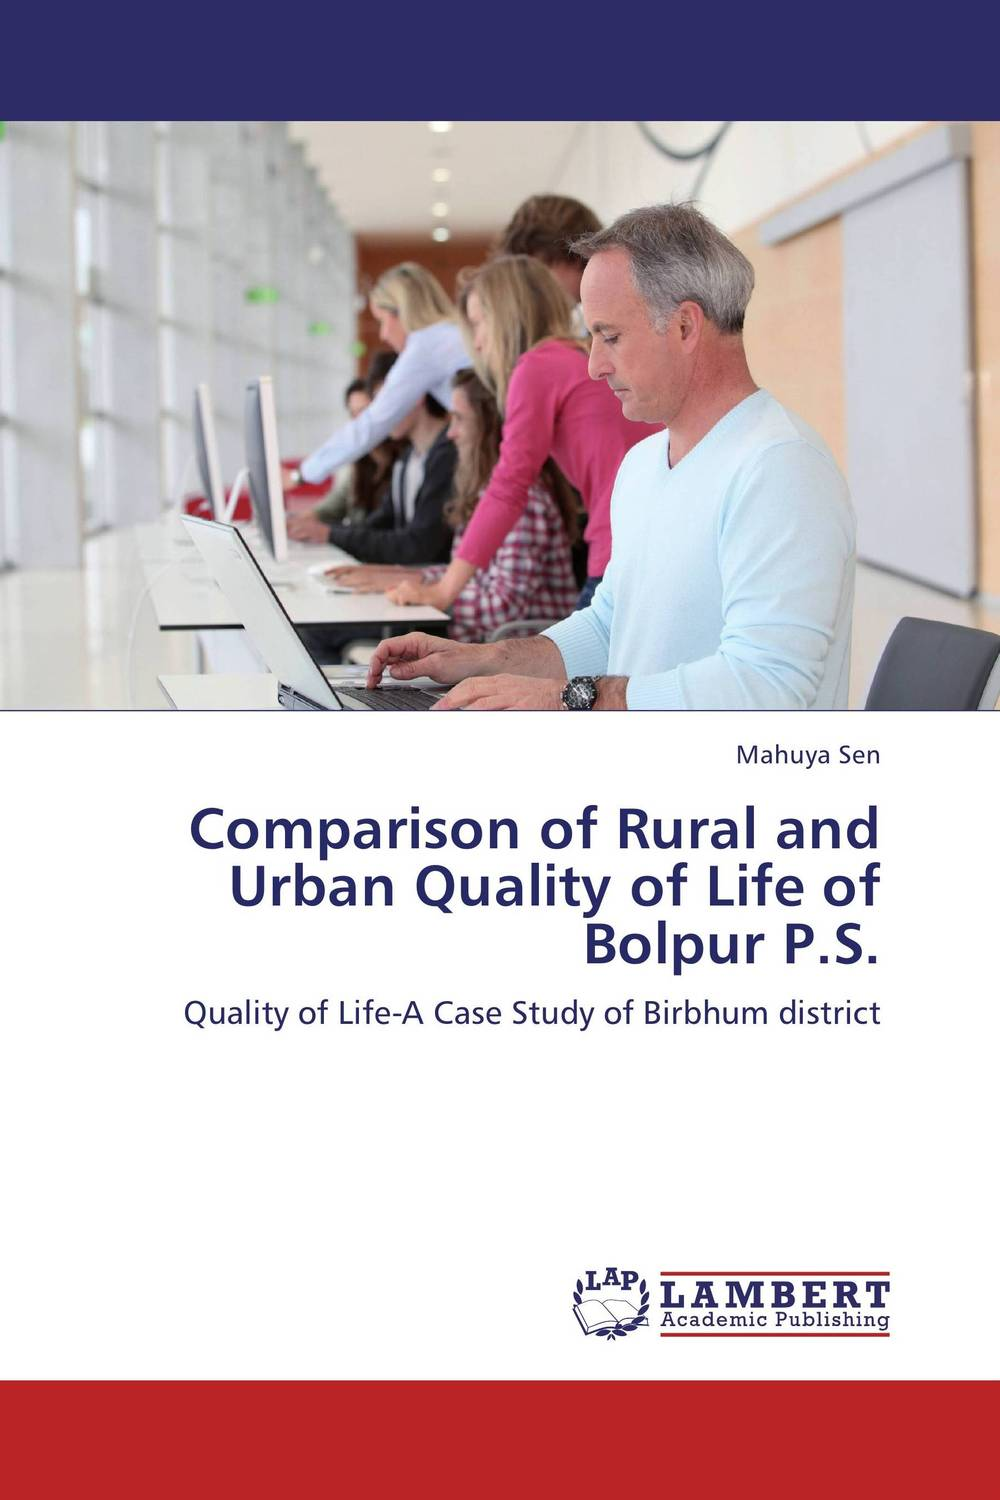 Comparison of Rural and Urban Quality of Life of Bolpur P.S.